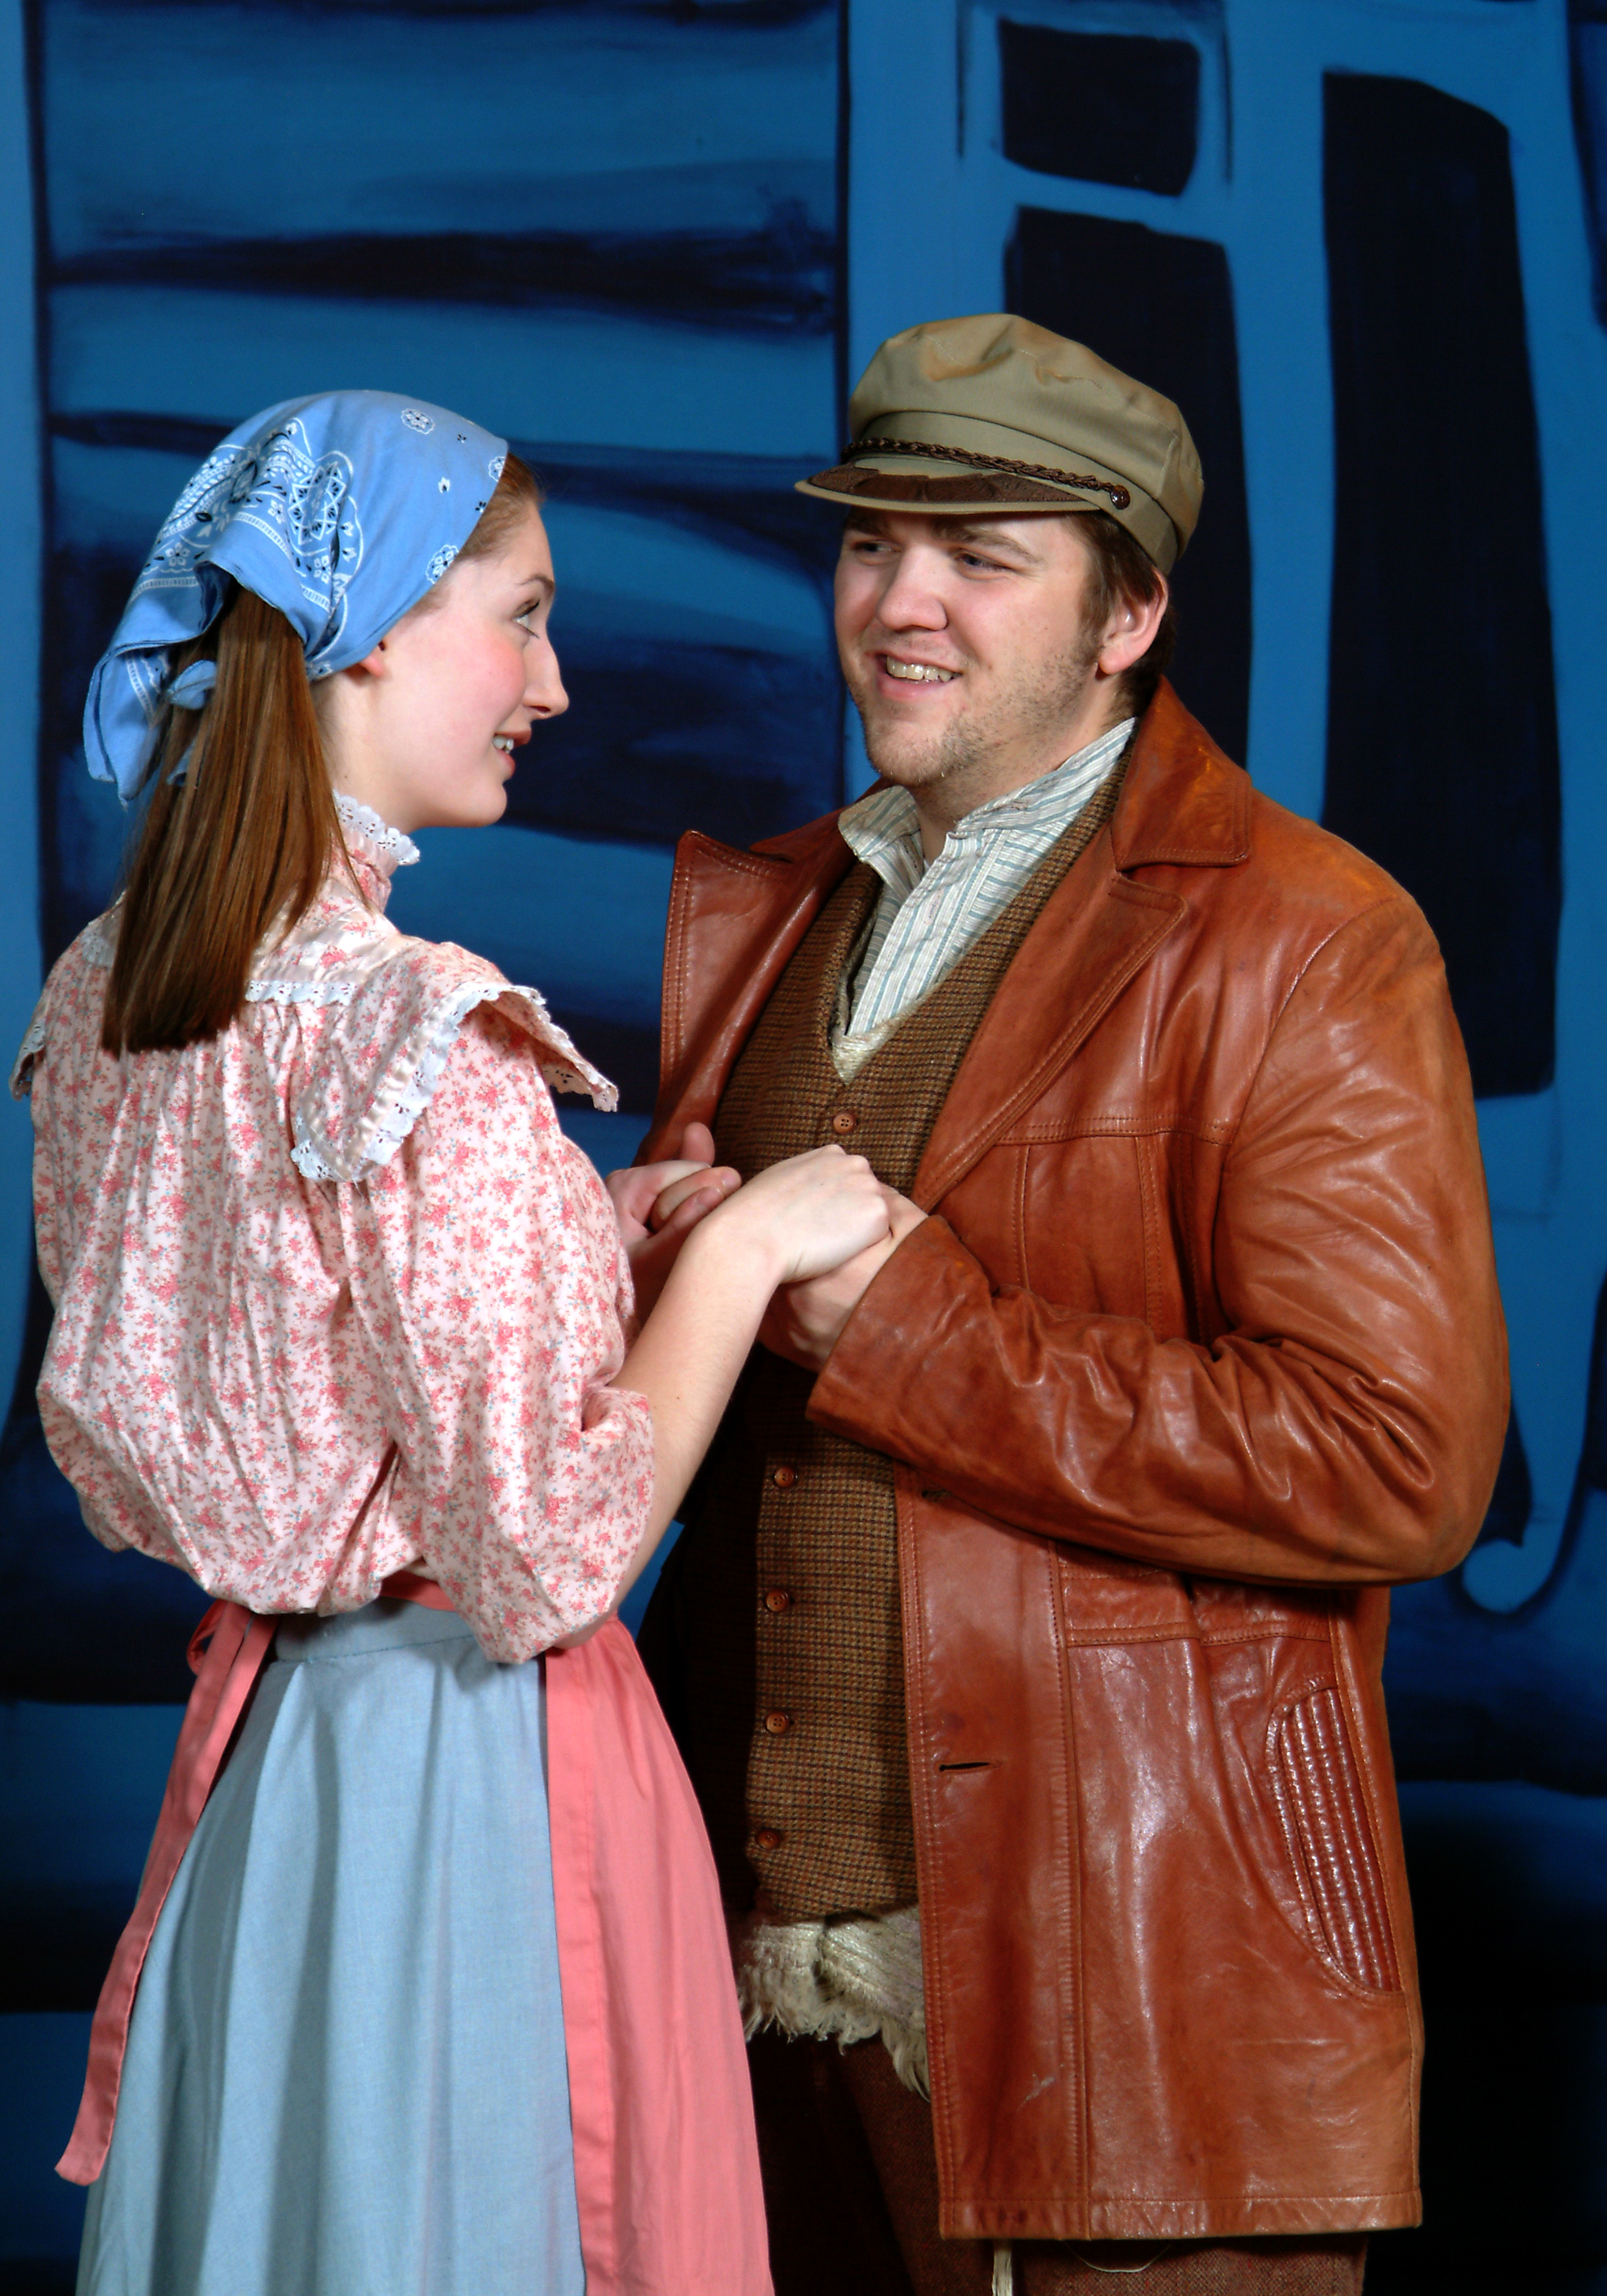 Hodel, Fiddler on the Roof 2005